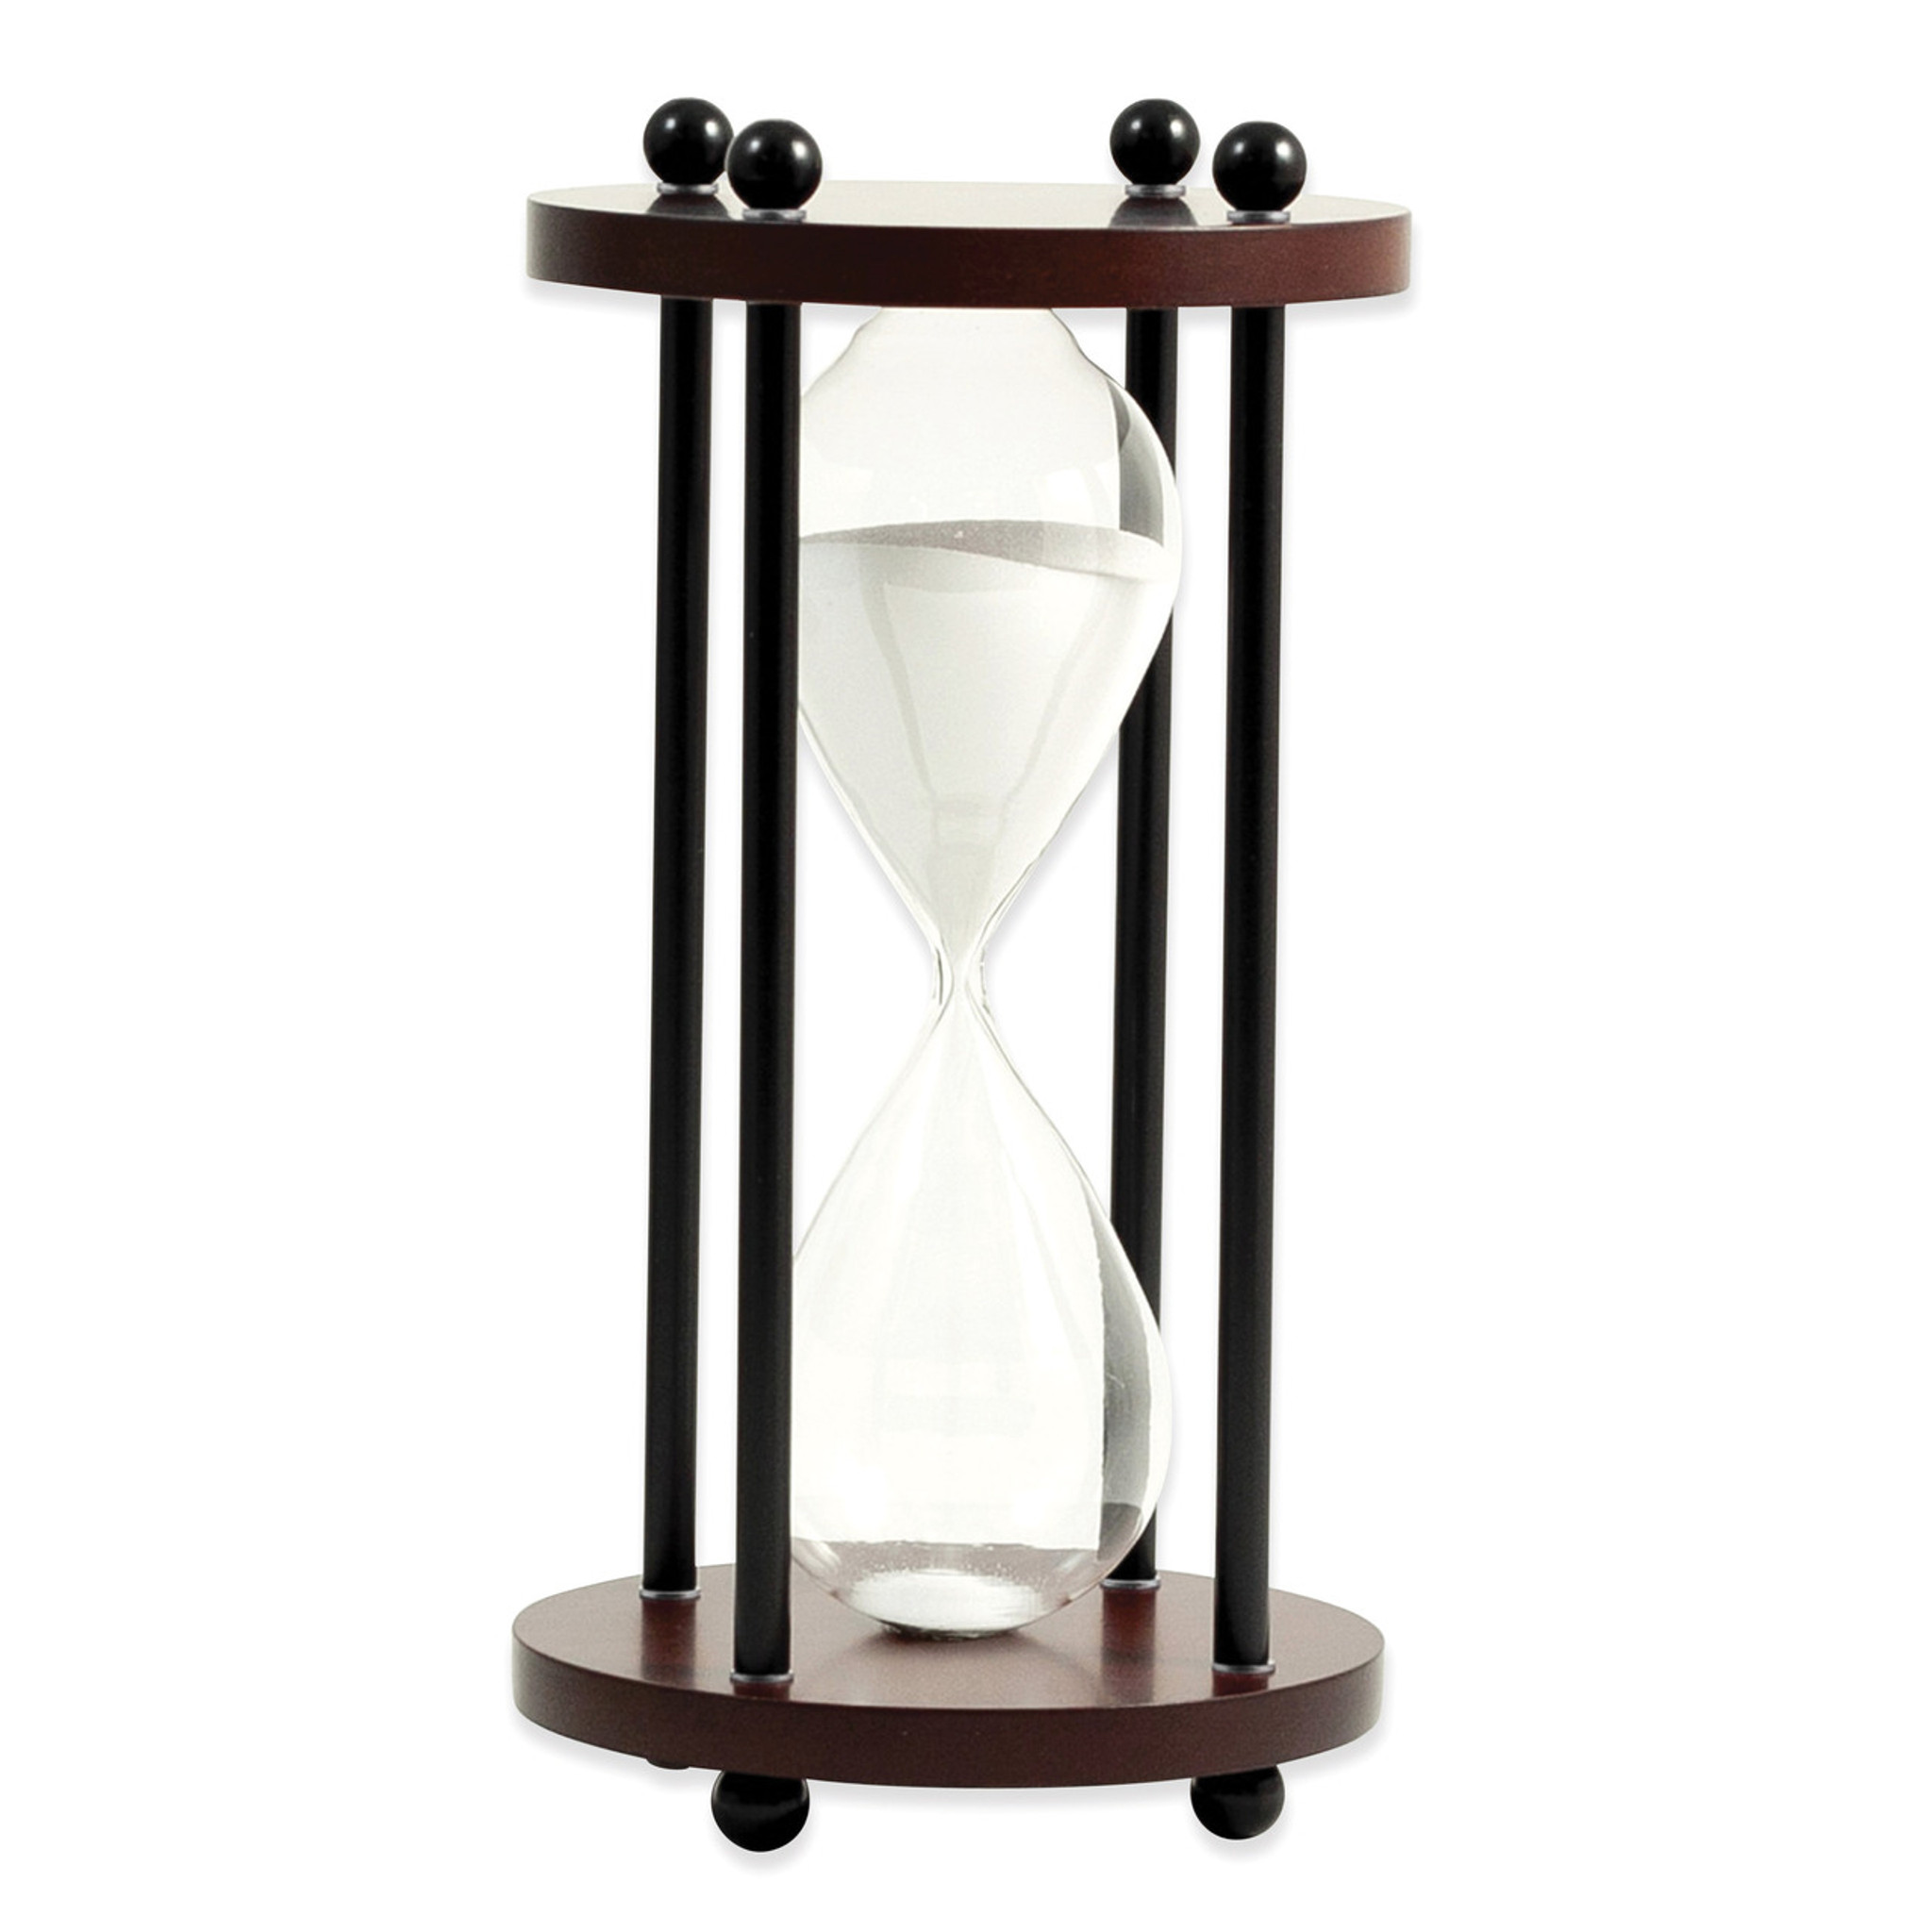 walnut wood ten minute sand timer homebello